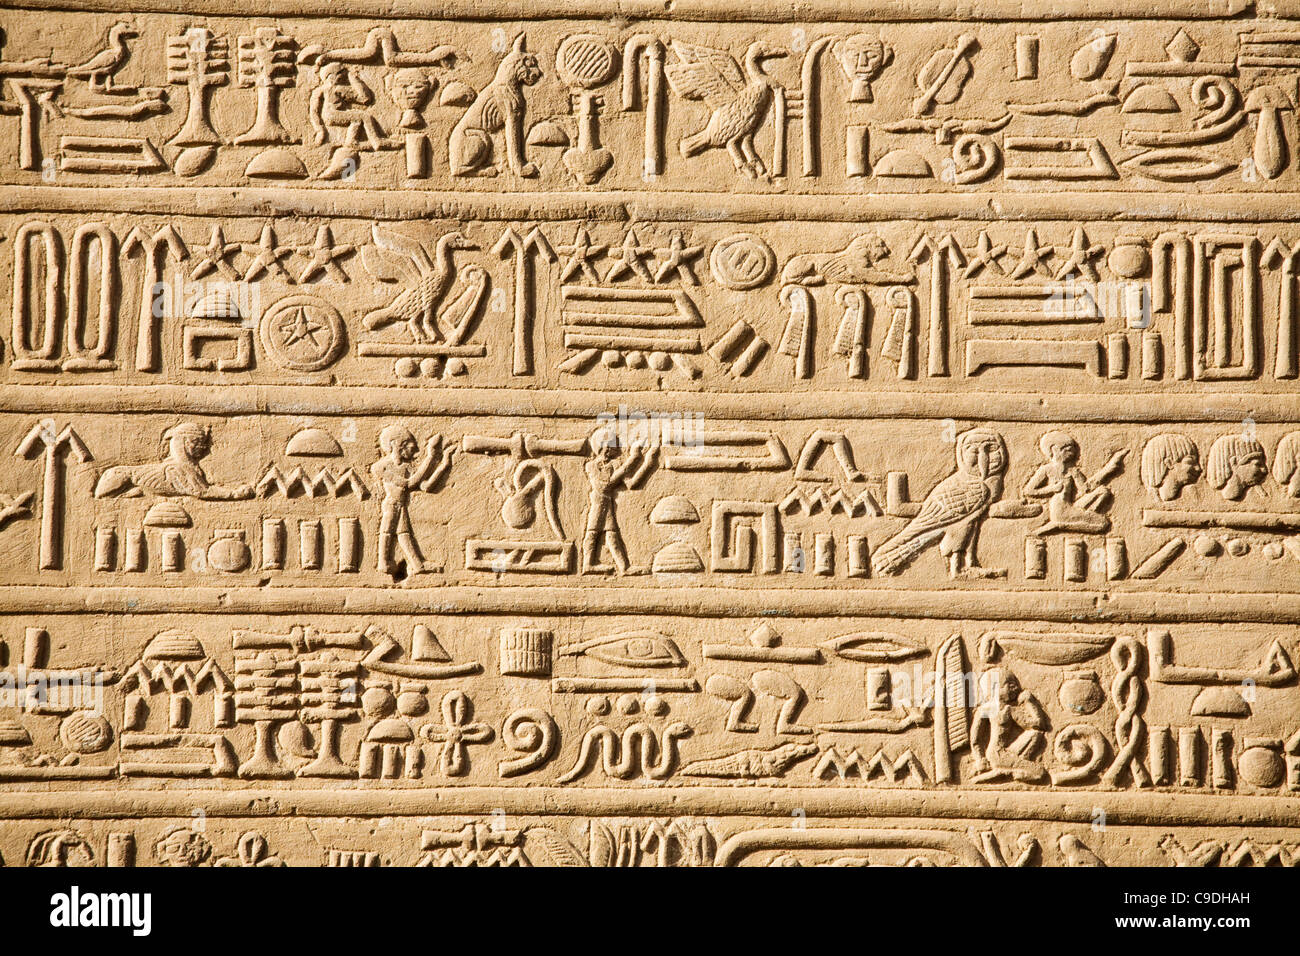 3d Peel And Stick Brick Wallpaper Egypt Hieroglyphics Carved Into Wall Of Temple Of Horus